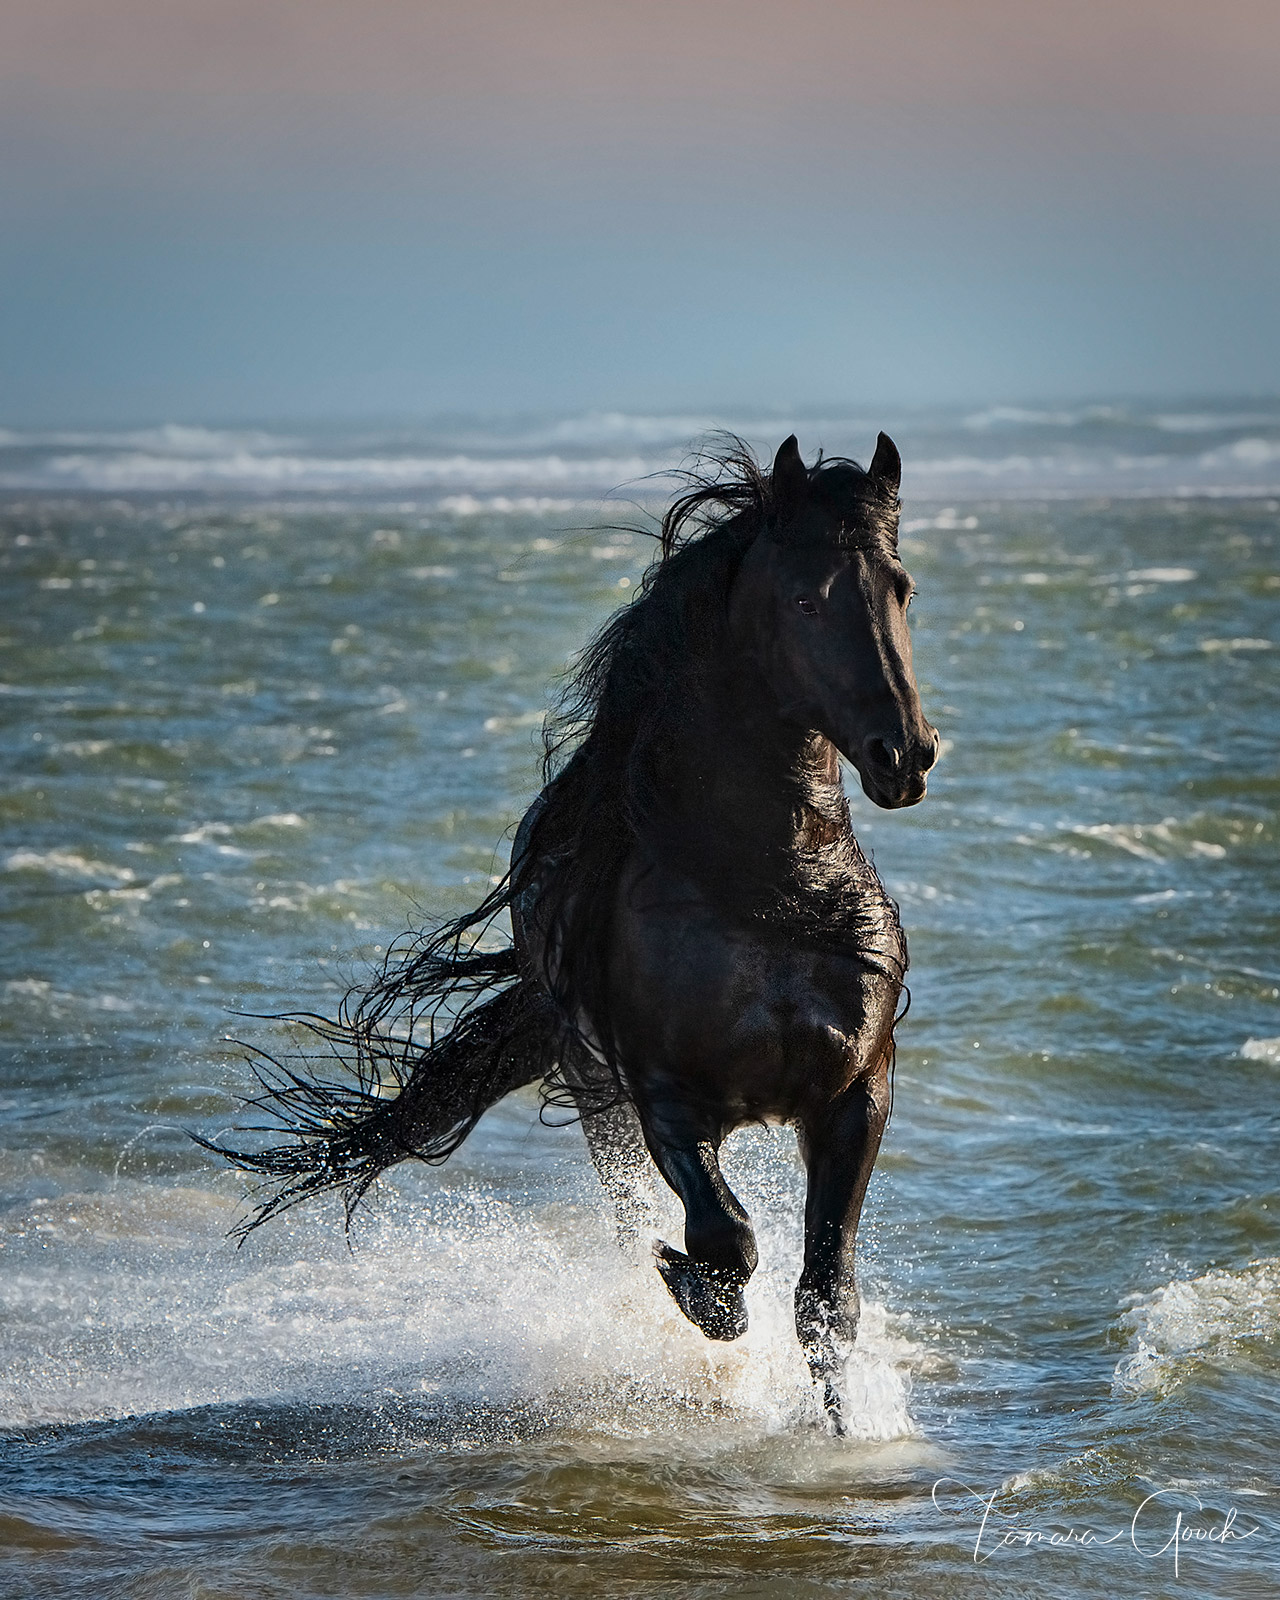 Friesian, horse, equine, stallion, water, waves, ocean, beach, surf, liberty, black, Splash, Zone, boutique, luxury, print, fine art, limited edition, for sale, purchase, best, beautiful,, photo